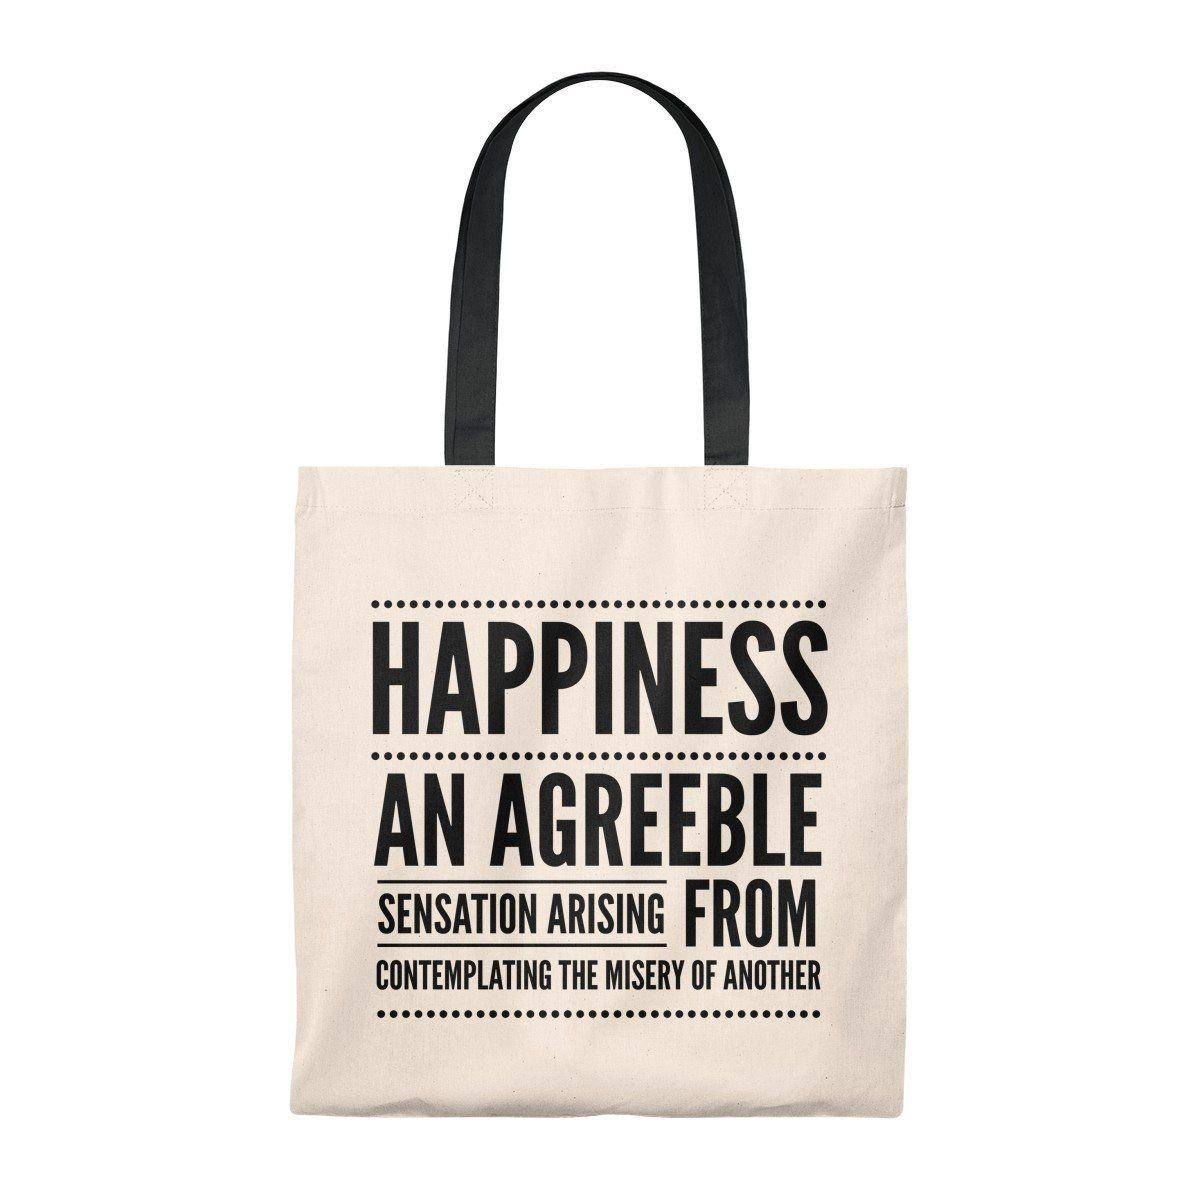 happiness definition tote bag funny snarky silly sarcastic bags